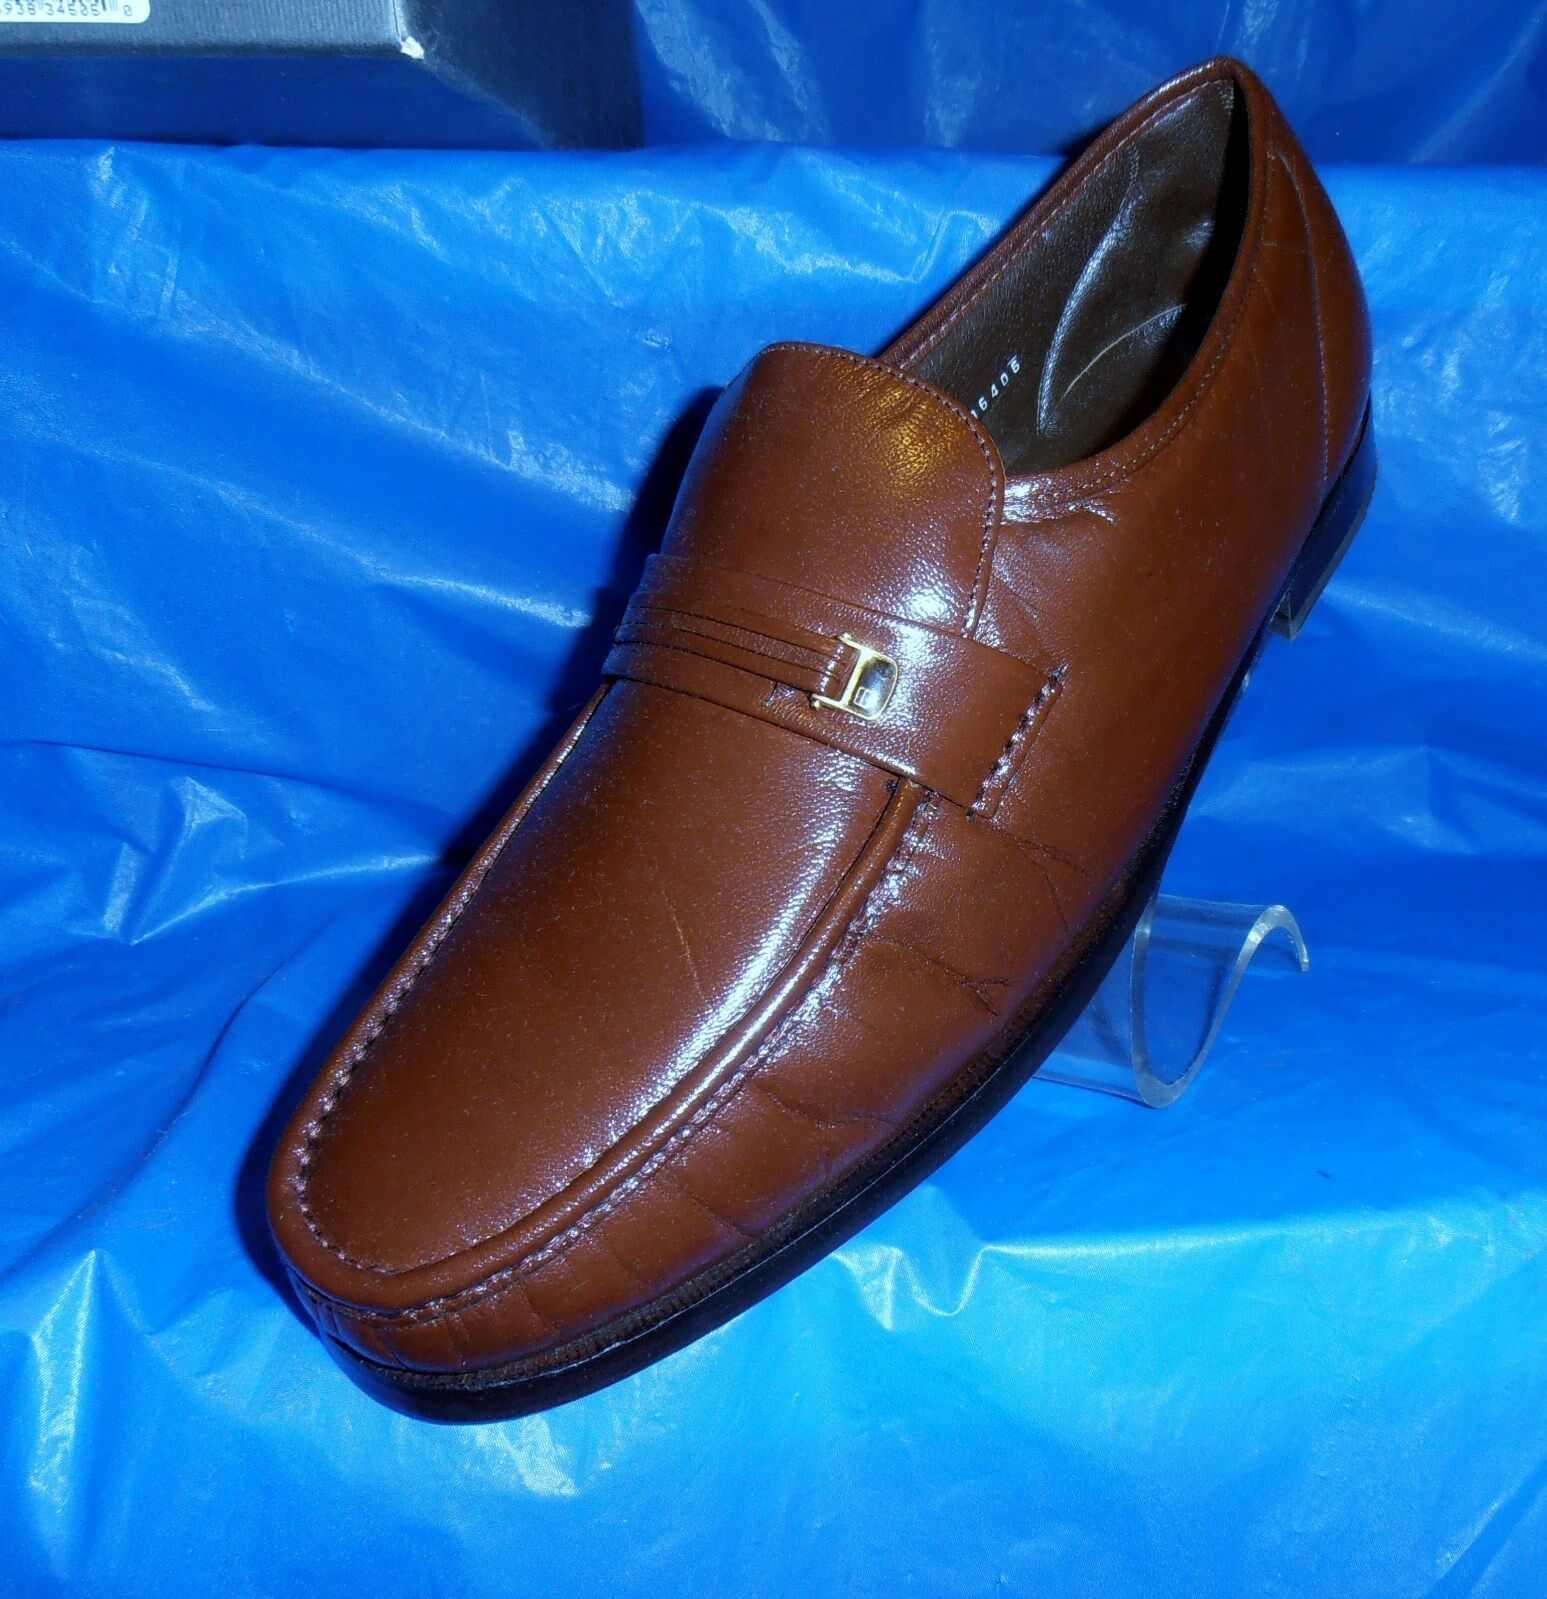 Offriamo vari marchi famosi Florsheim Dancer Cognac Moc Toe Leather Loafer 9 9 9  EEE with Leather Sole  connotazione di lusso low-key